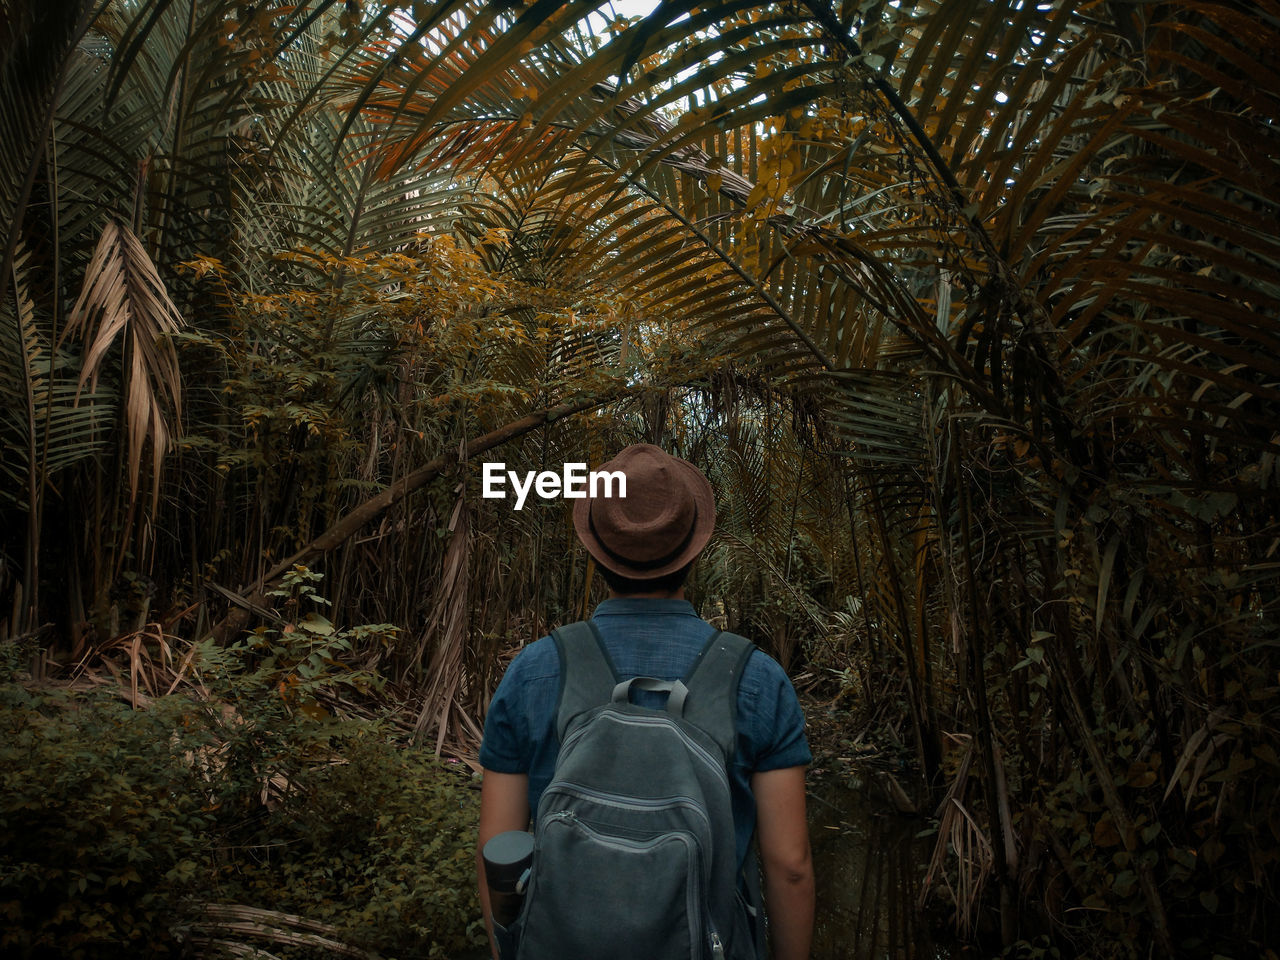 plant, tree, growth, one person, real people, rear view, waist up, standing, palm tree, lifestyles, tropical climate, leisure activity, nature, casual clothing, men, day, land, three quarter length, walking, outdoors